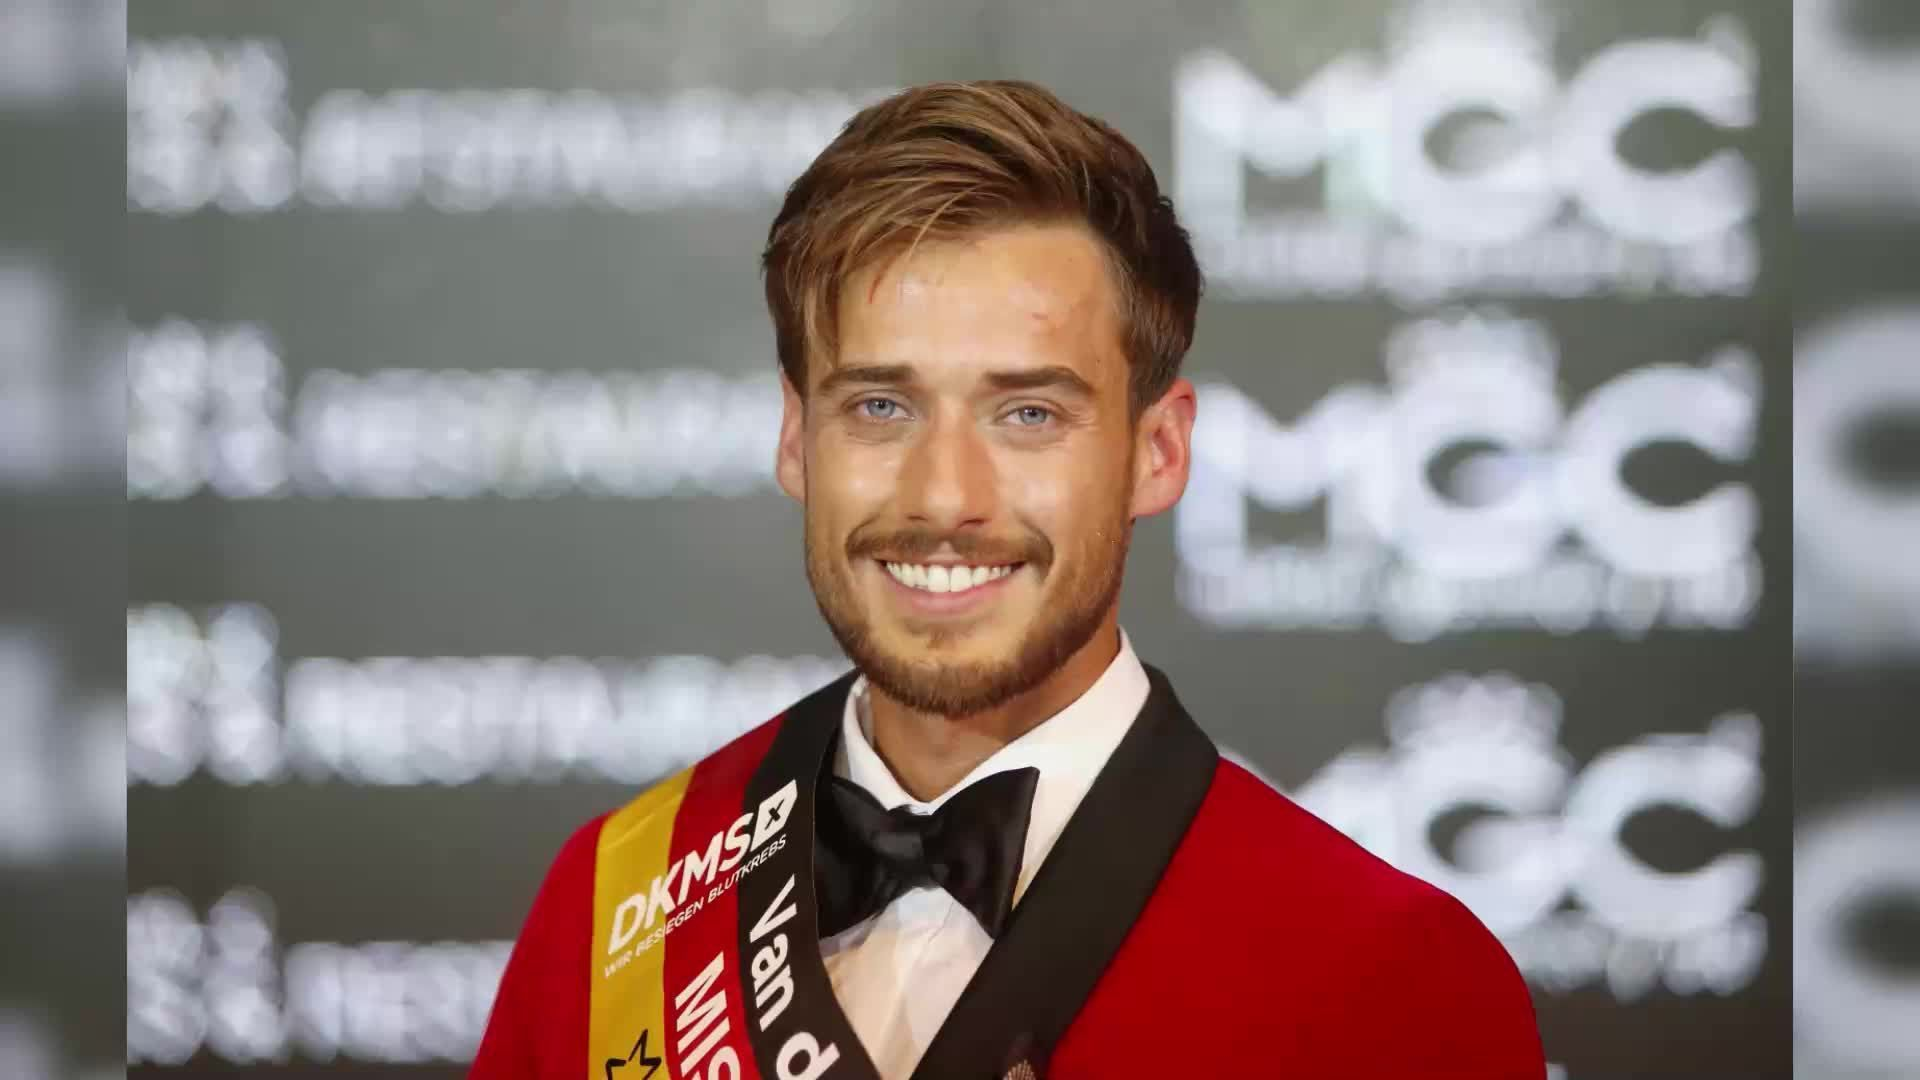 Mister Germany Wahl